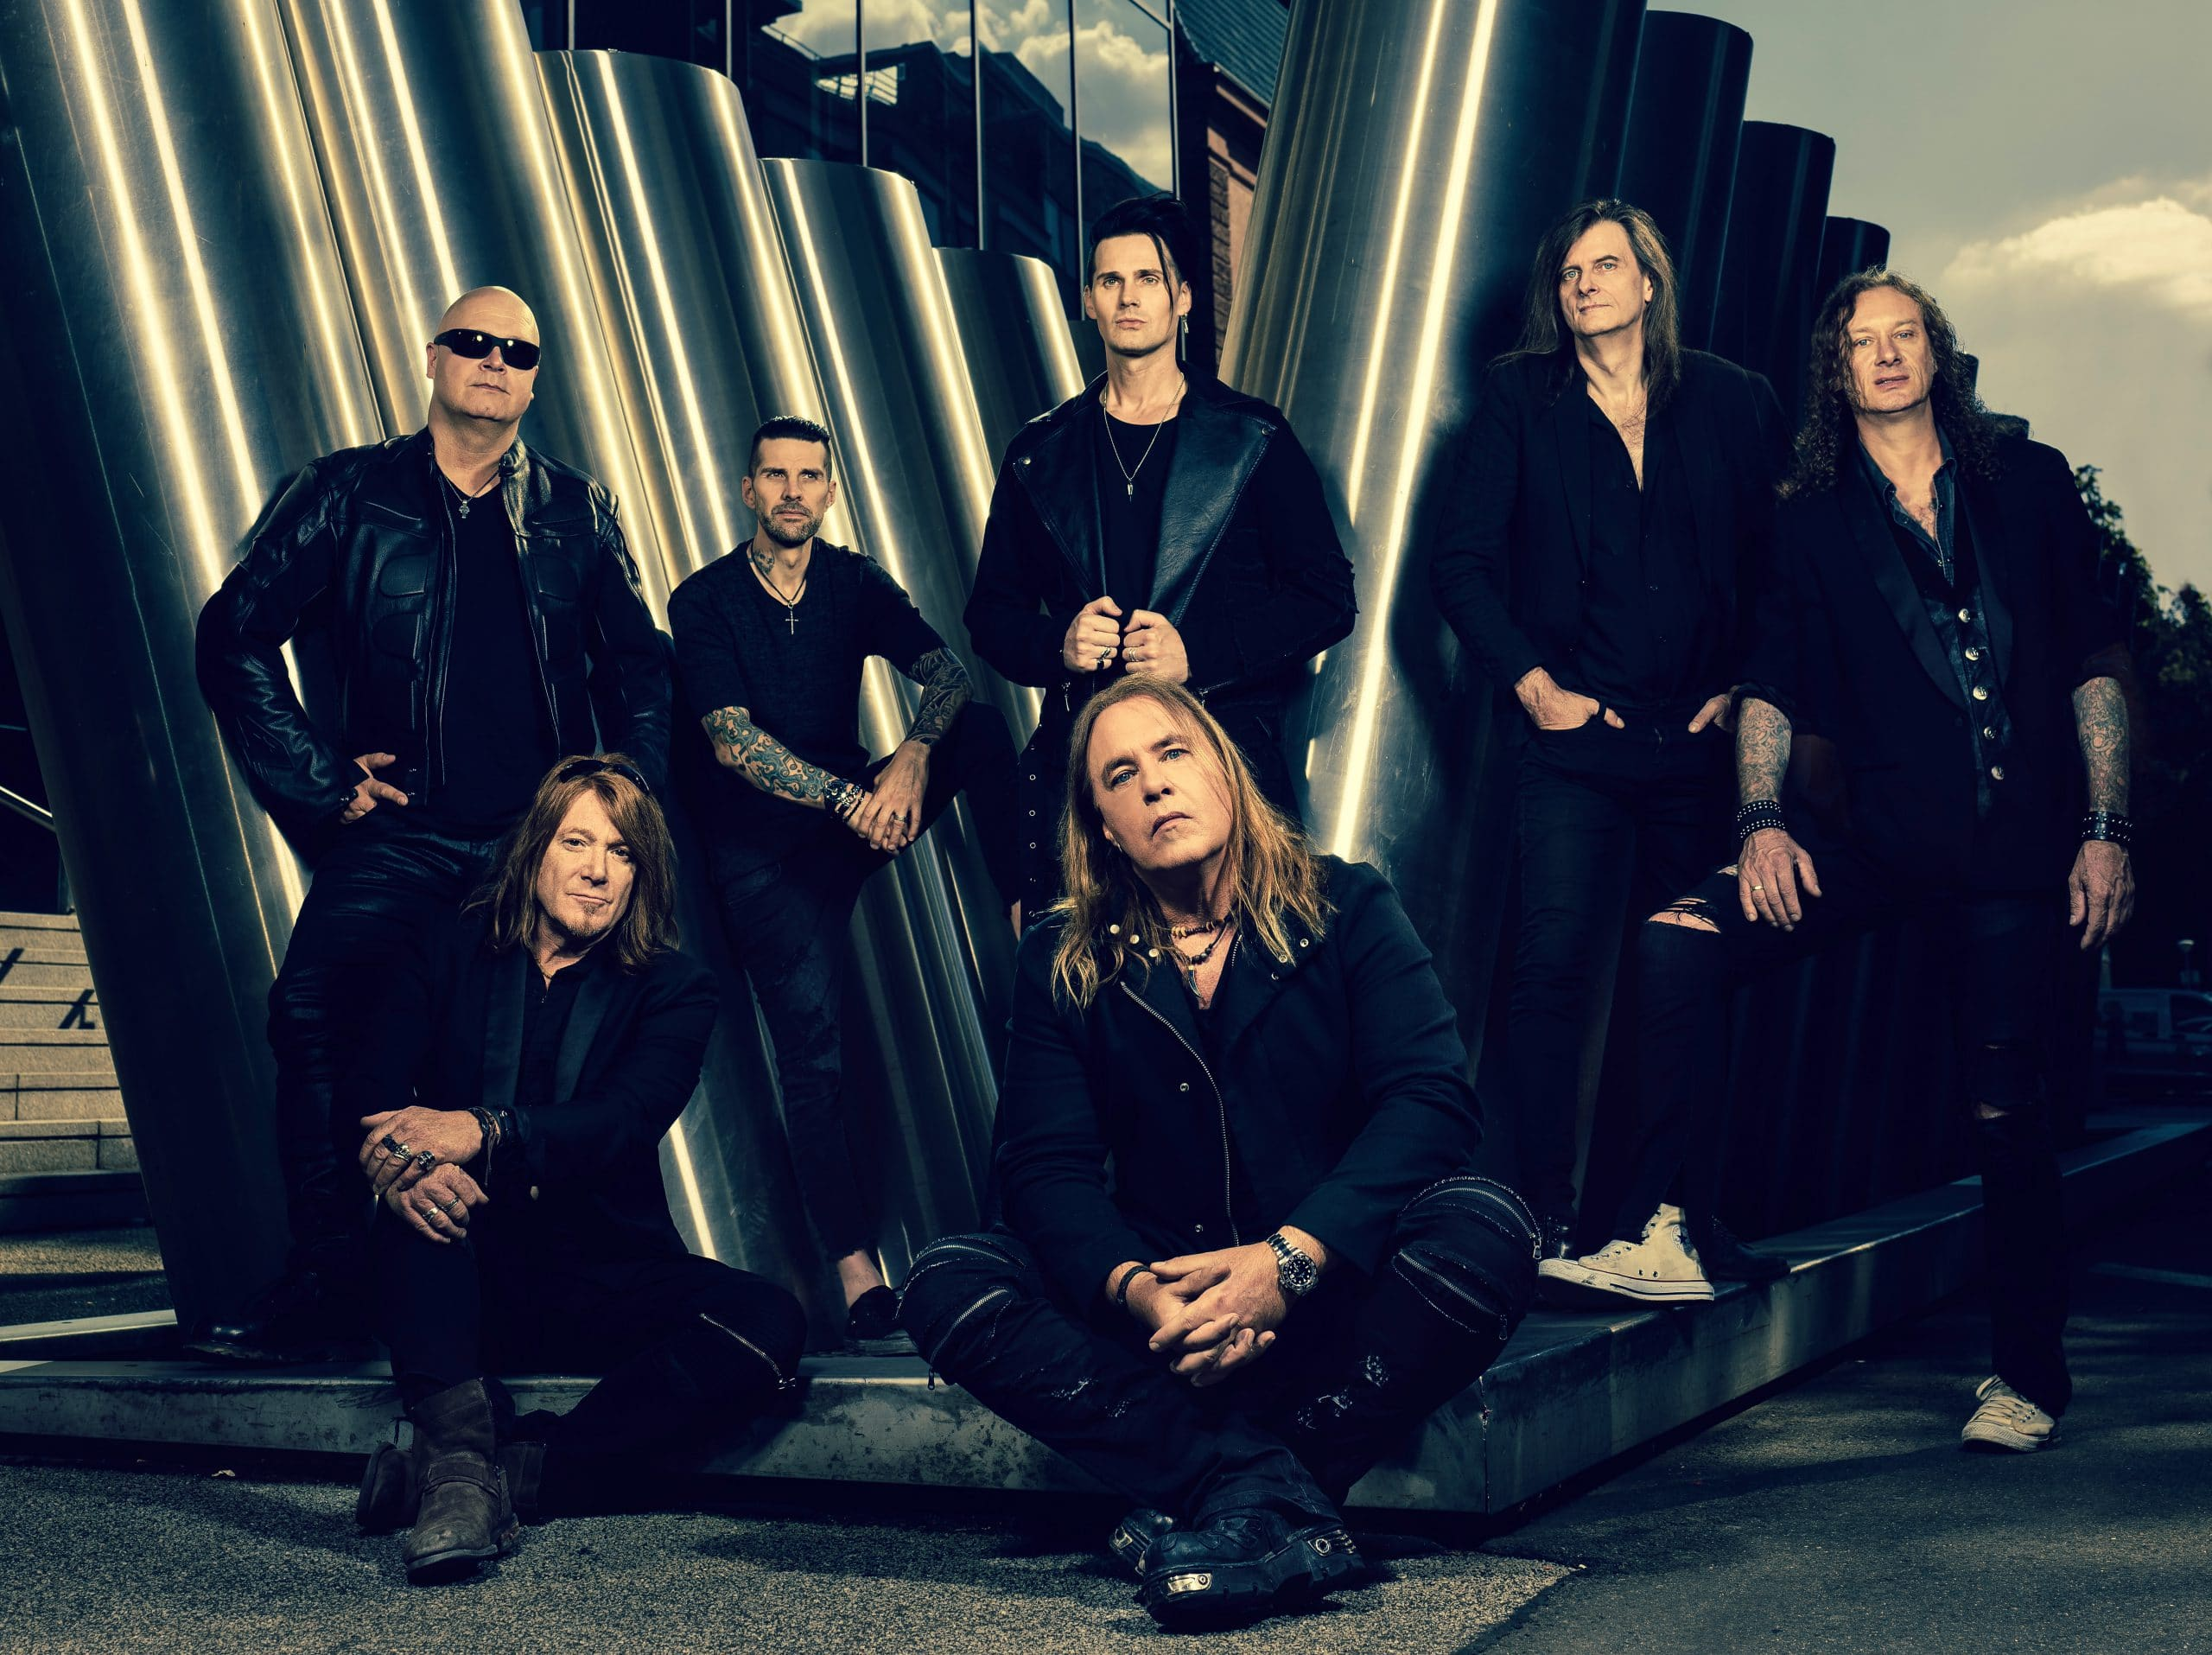 Helloween Announce Self-Titled New Album Coming June 18th: Helloween